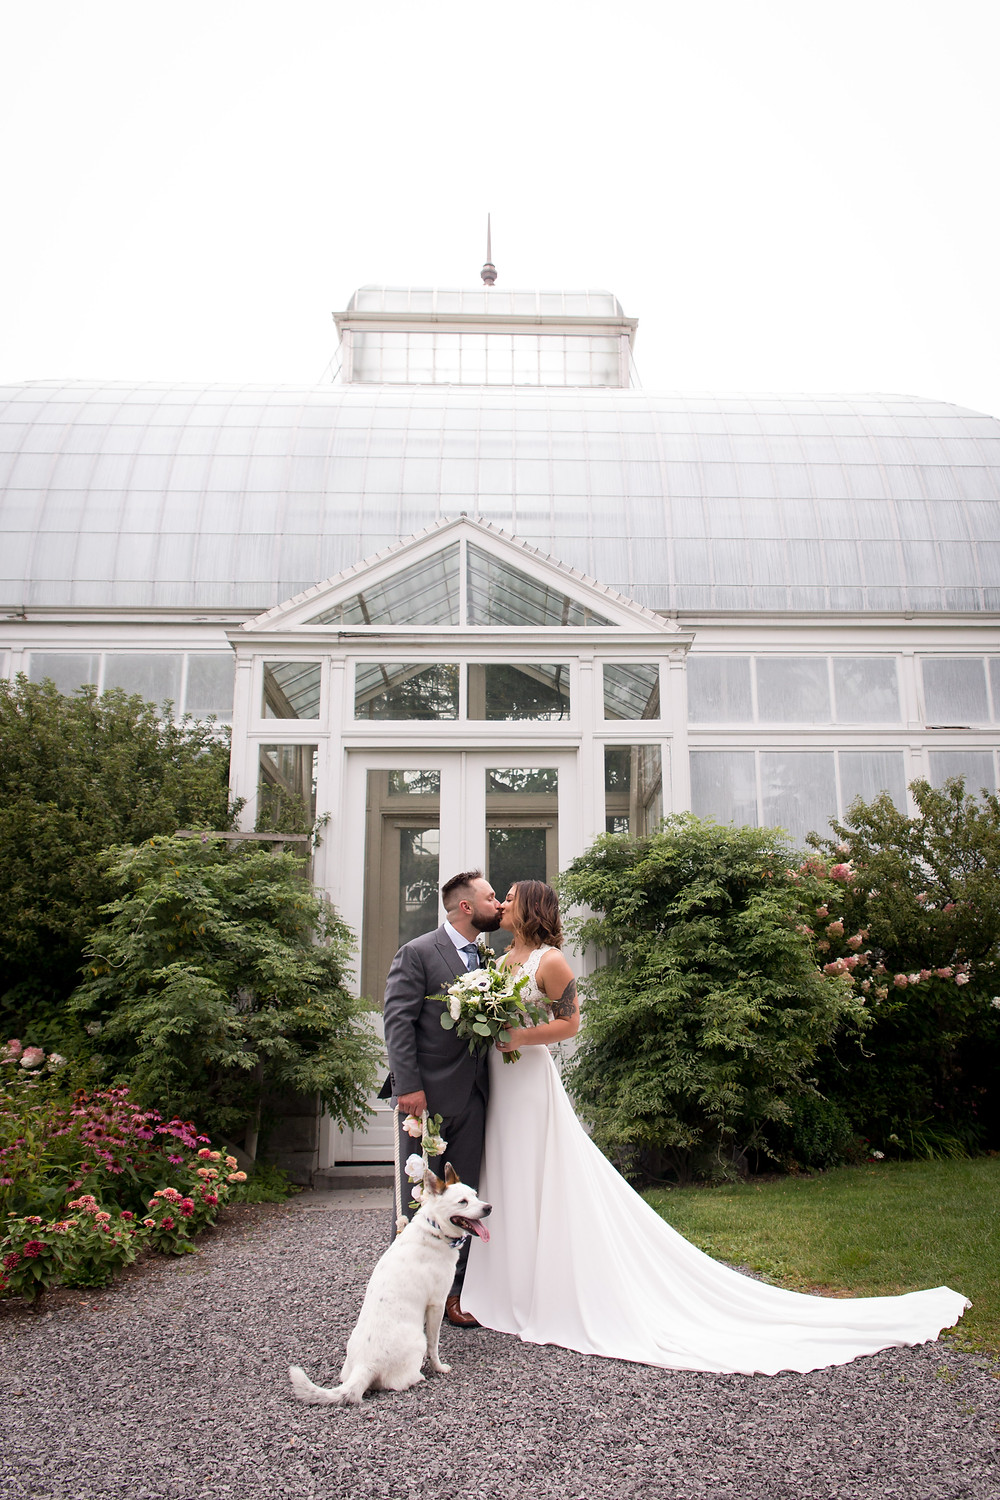 Buffalo Erie Botanical Gardens Wedding Photo with Bride Groom and flower pup